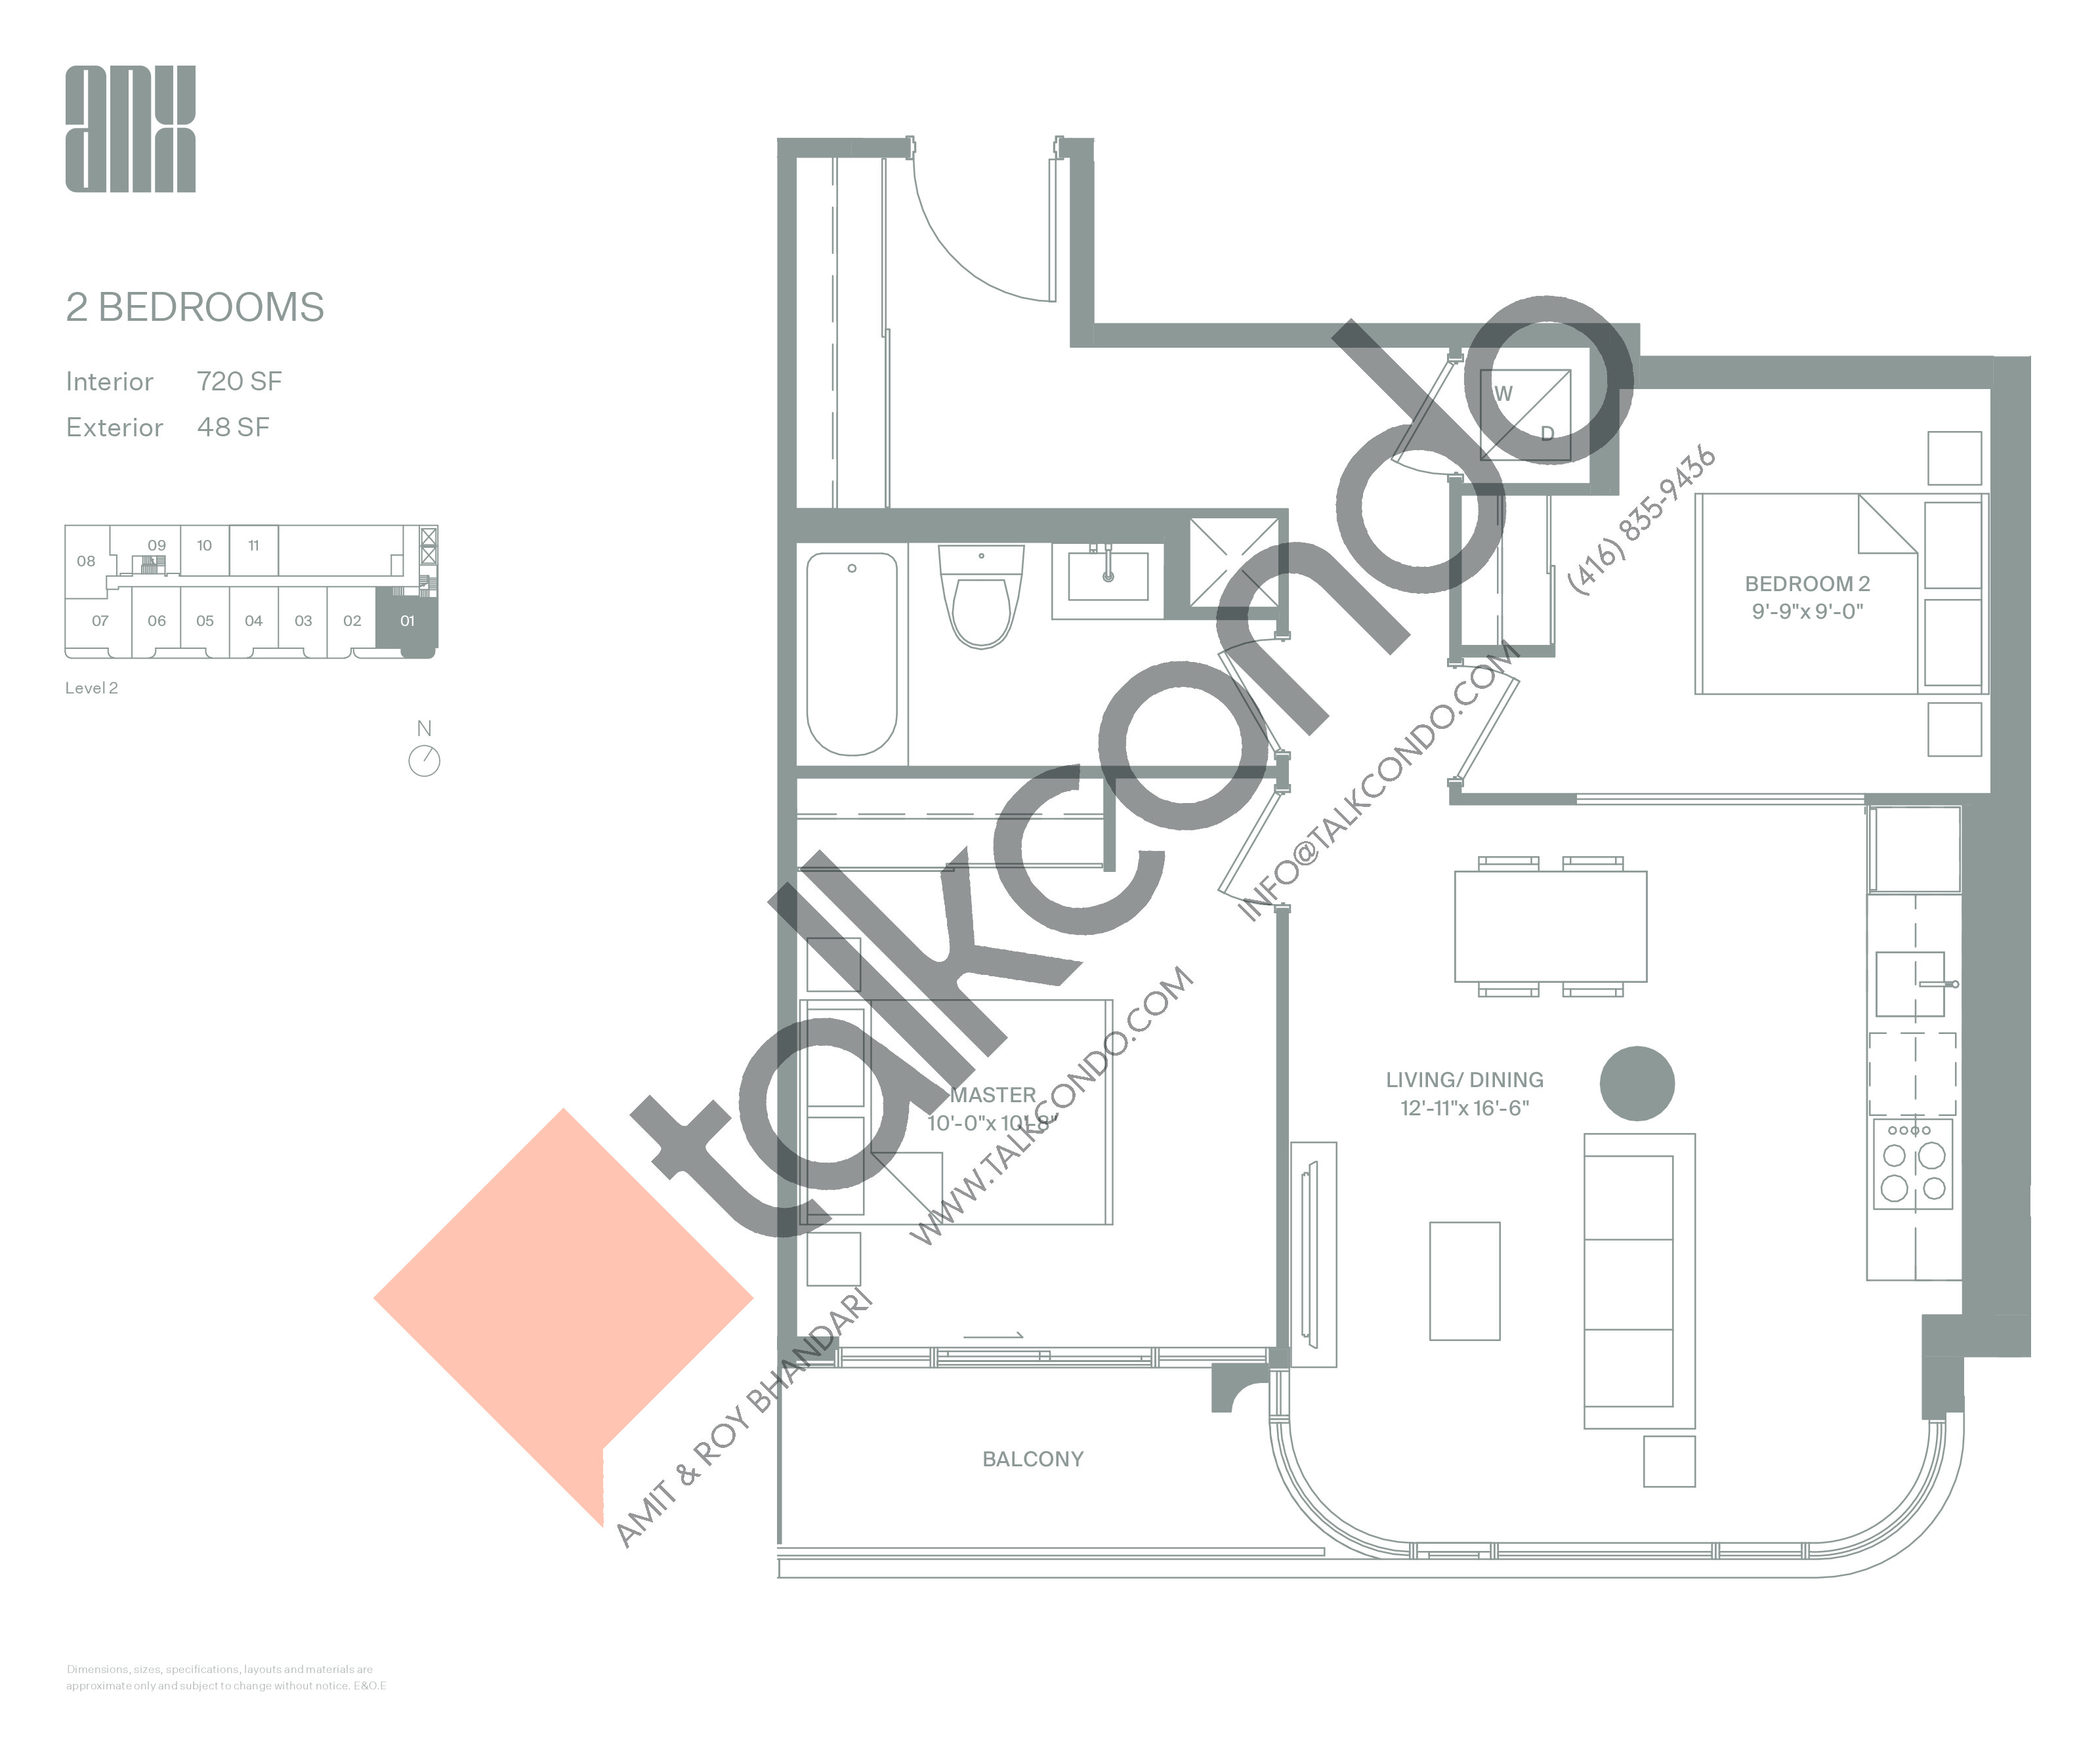 Suite 720 Floor Plan at ANX Condos - 720 sq.ft